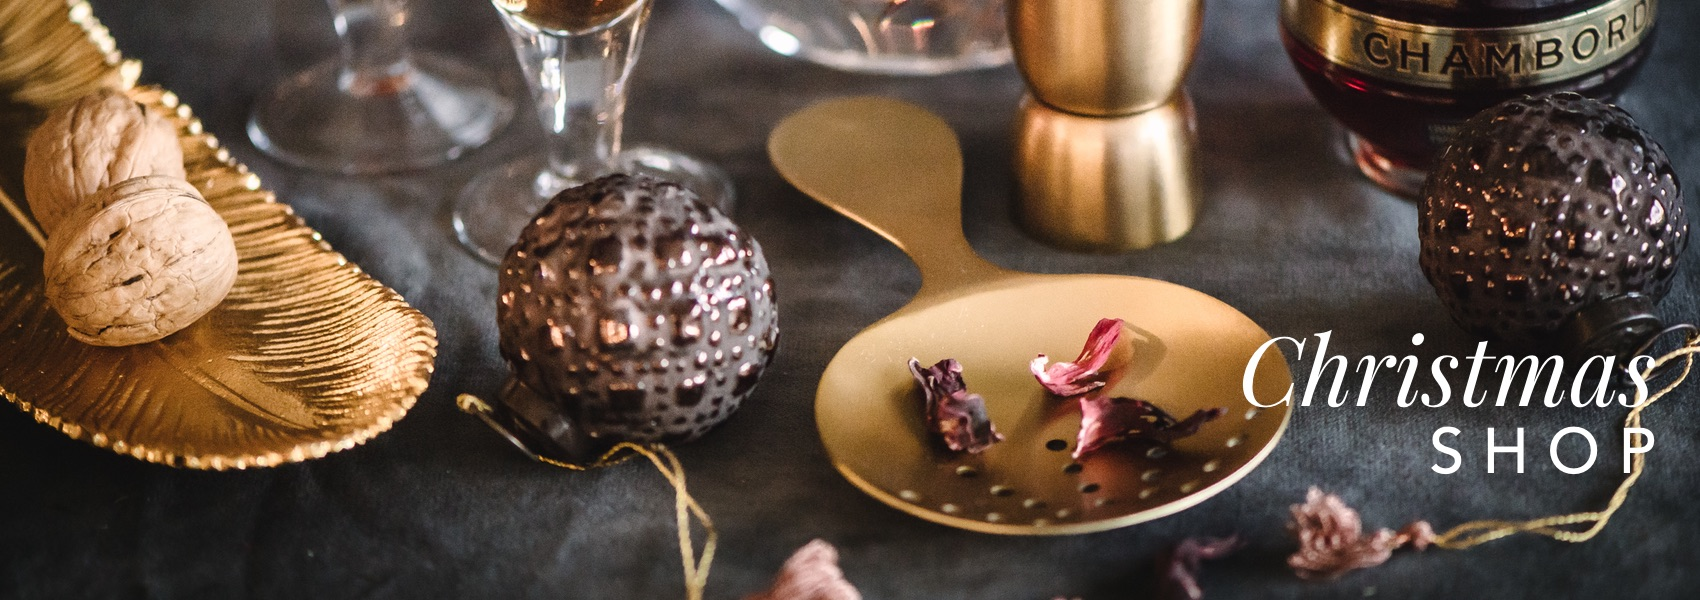 Curious Egg Christmas Shop 2018.  Assorted gold, bronze and copper Christmas decorations and decorative accessories with Chambord champagne cocktails and petals.